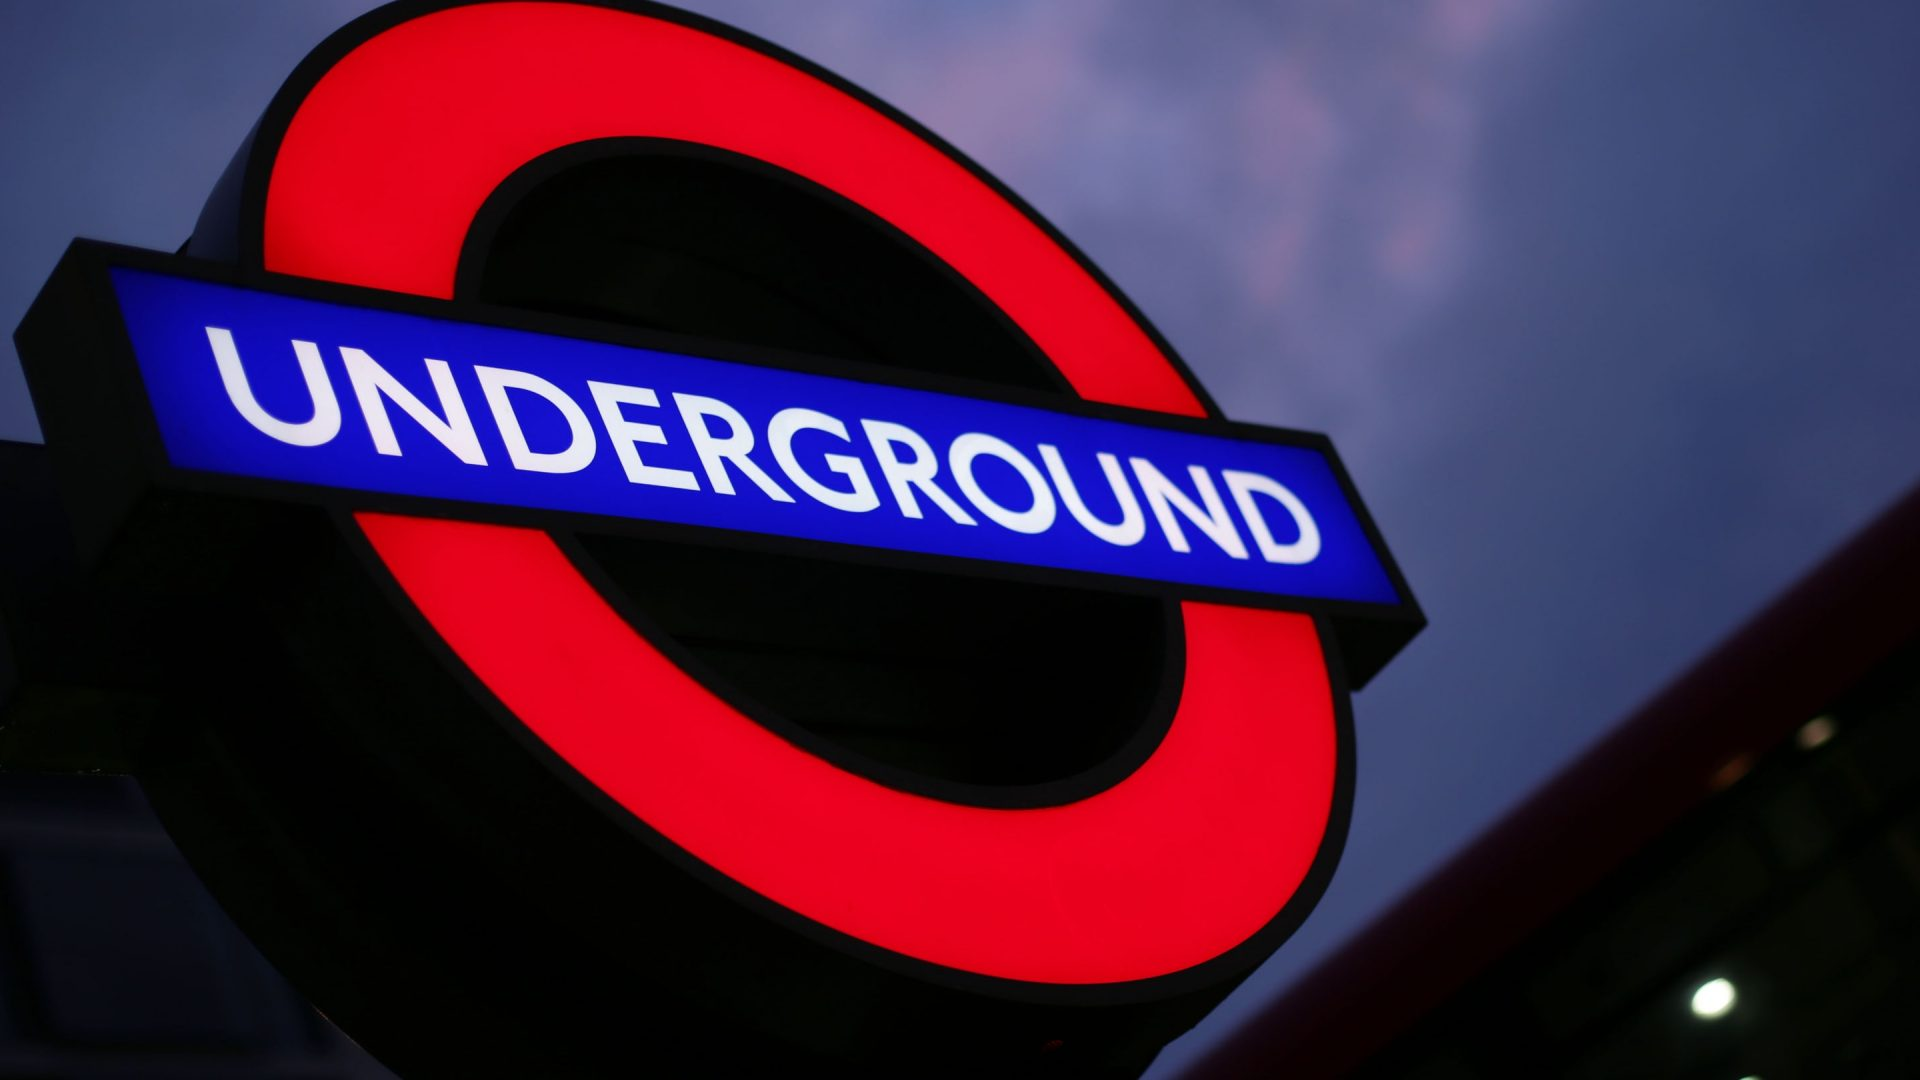 Tube and train closures announced over the festive period